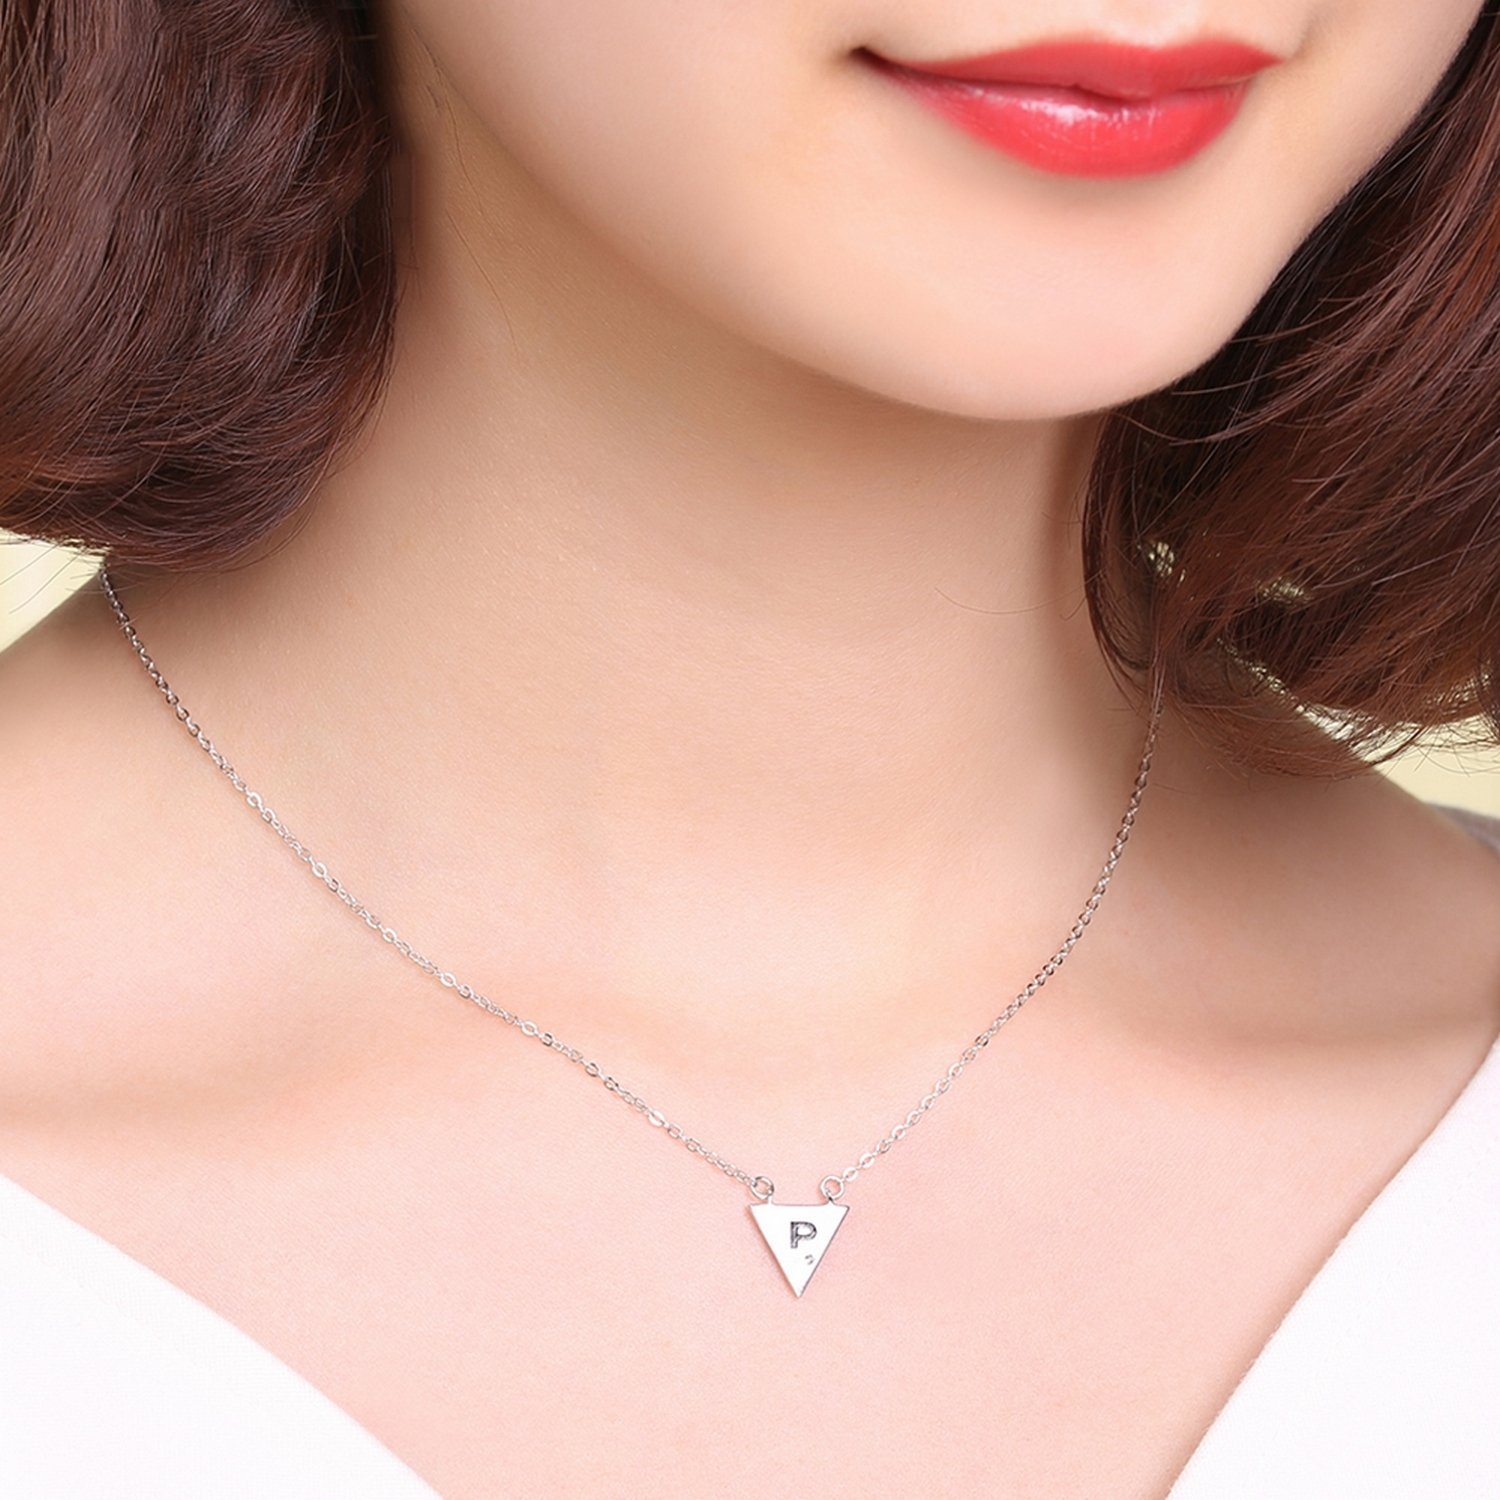 CS-DB Jewelry Silver Triangle Charm Chain Charm Pendants Necklaces